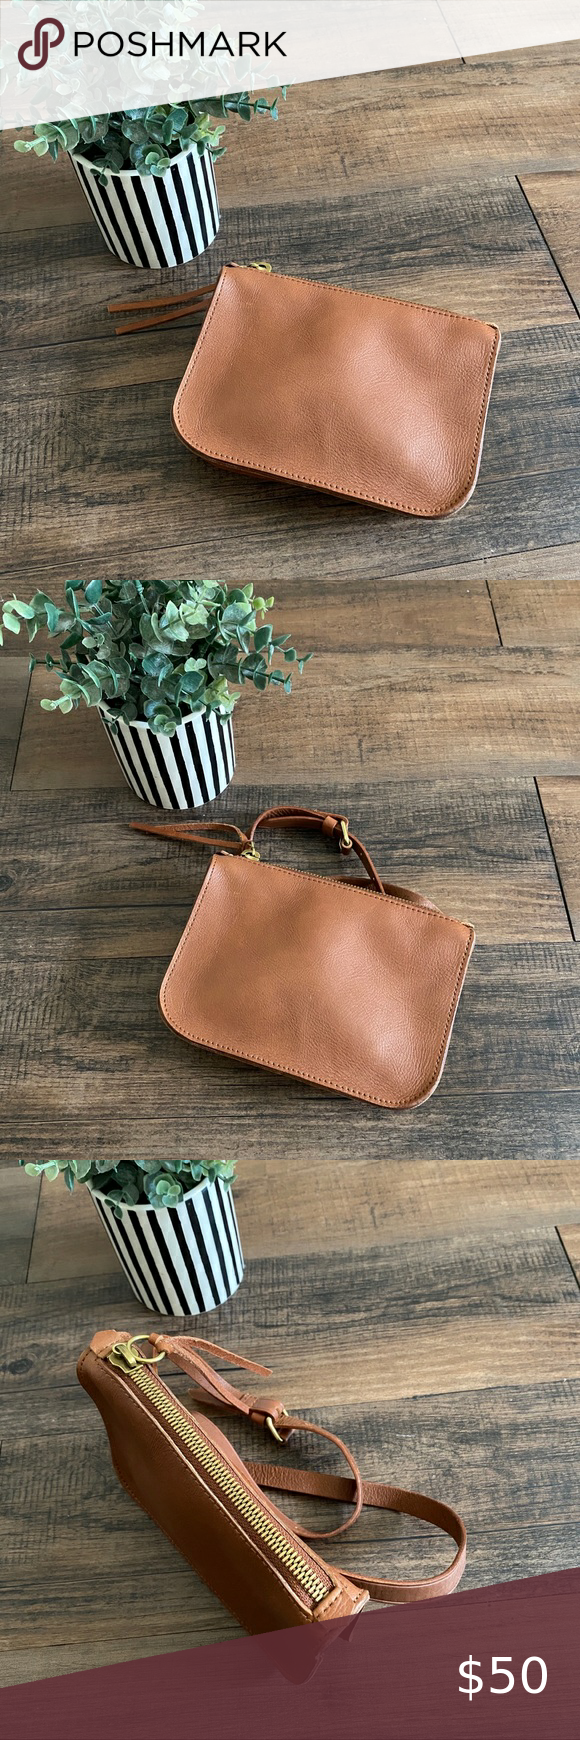 NEW Madewell Medium Simple Pouch Leather Belt Bag in 2020